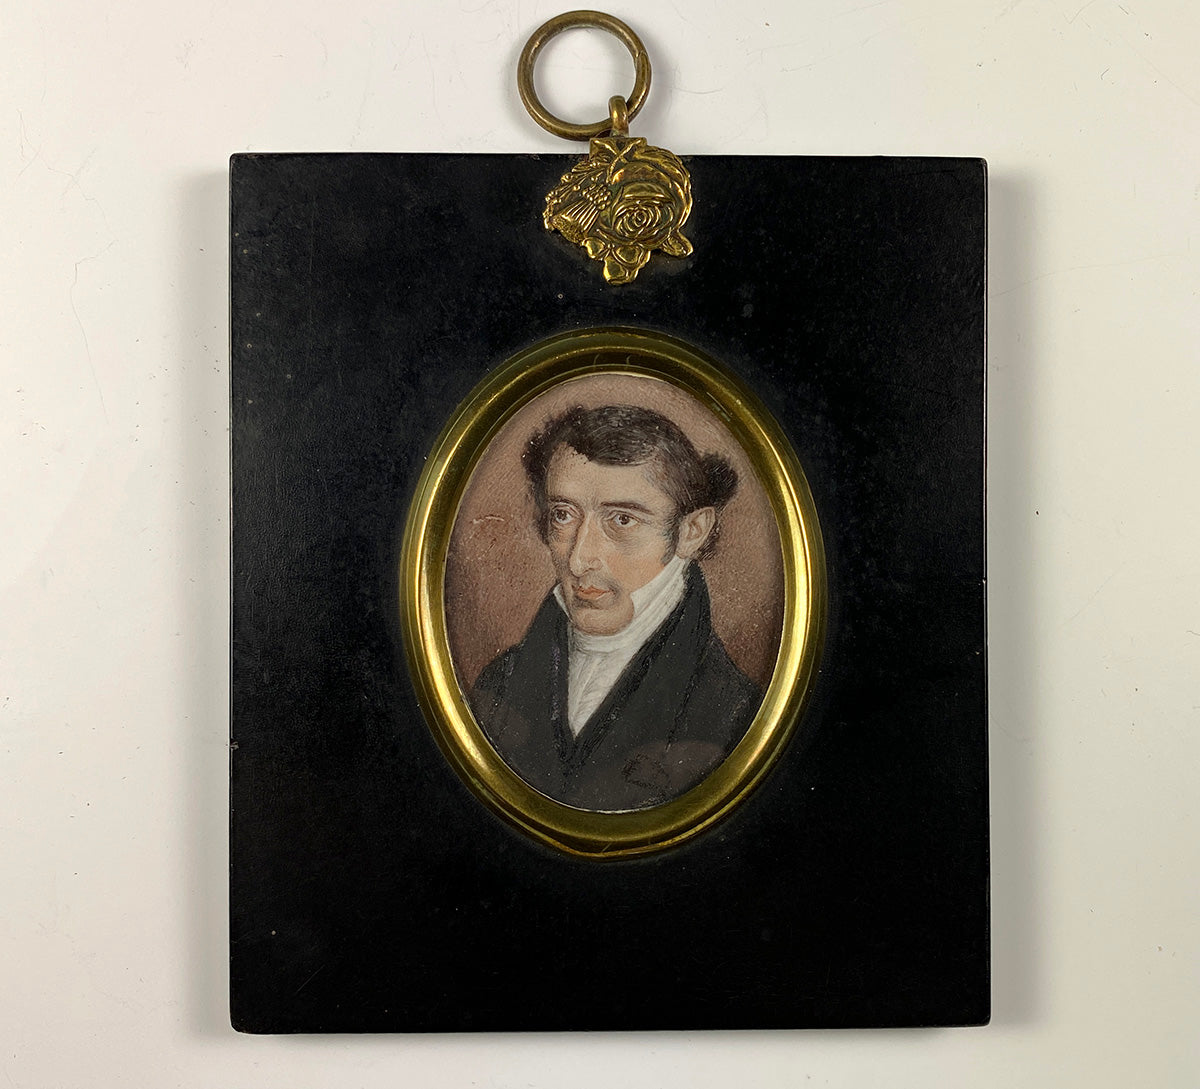 Antique Georgian English Portrait Miniature (c.1700s), Man with Combover, Frame